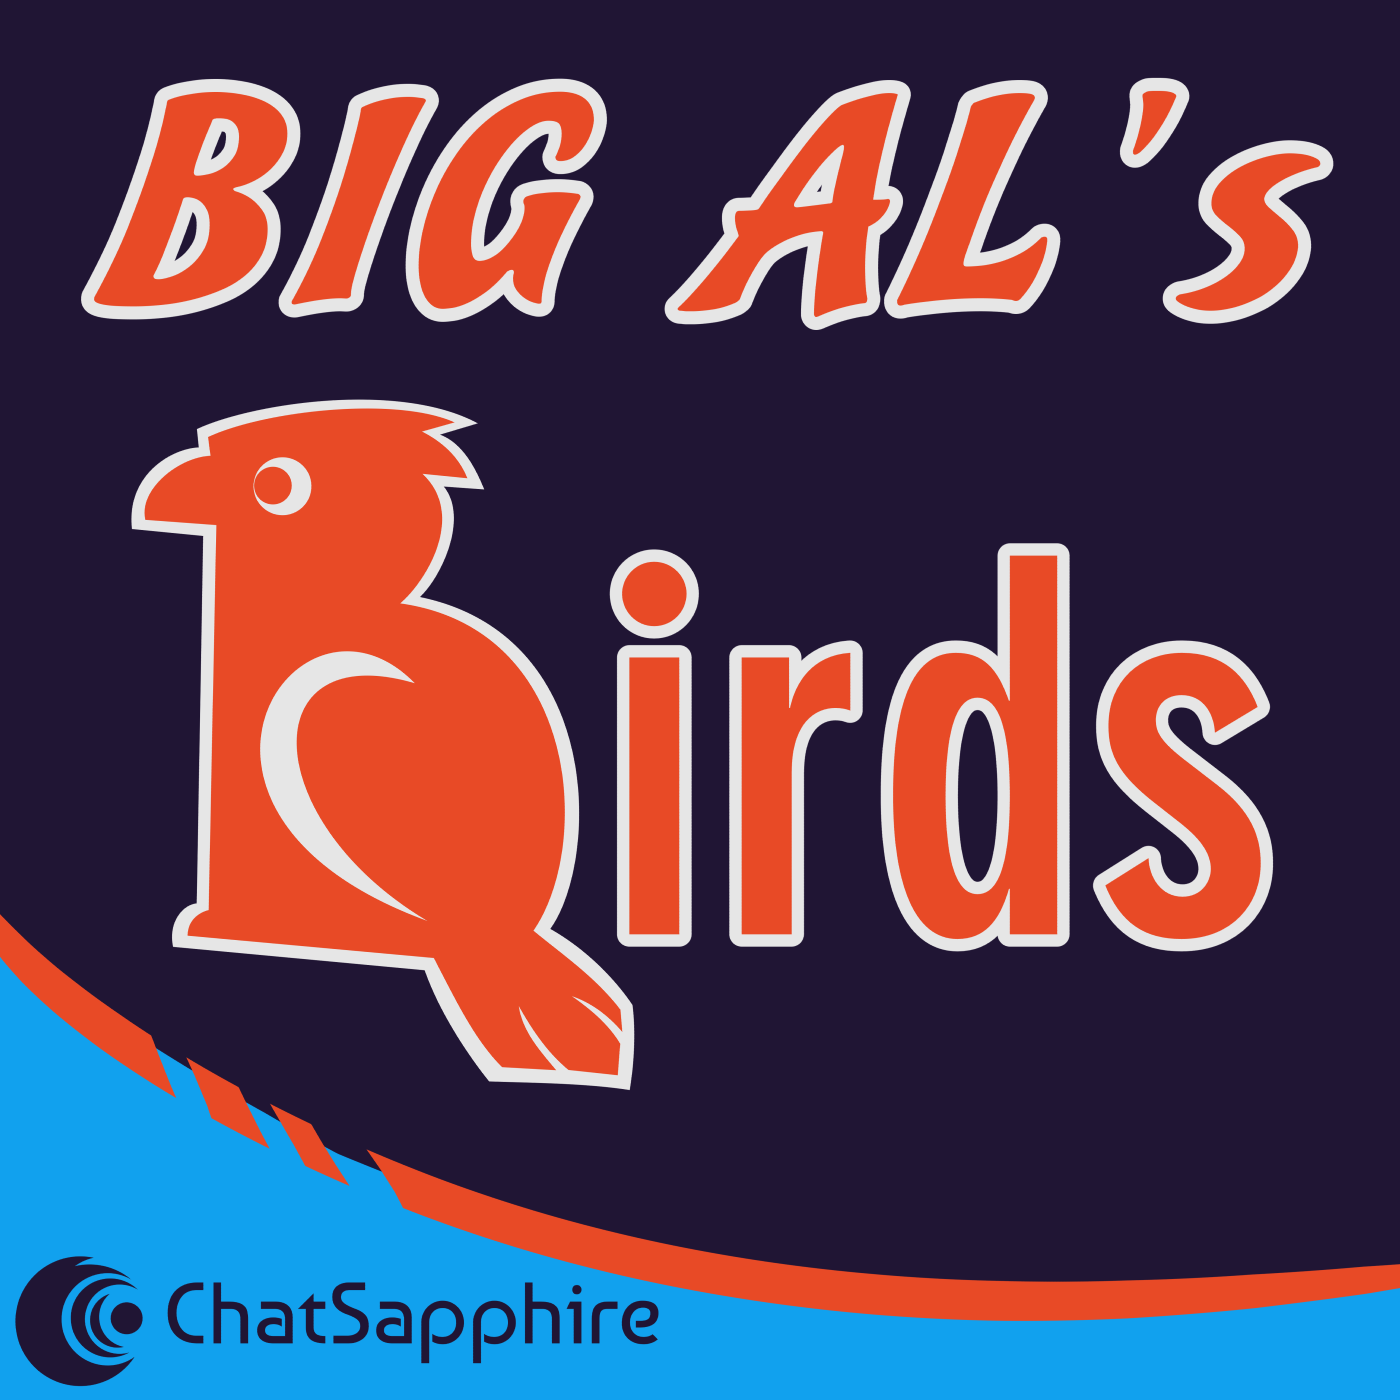 Show artwork for Big Al's Birds by ChatSapphire